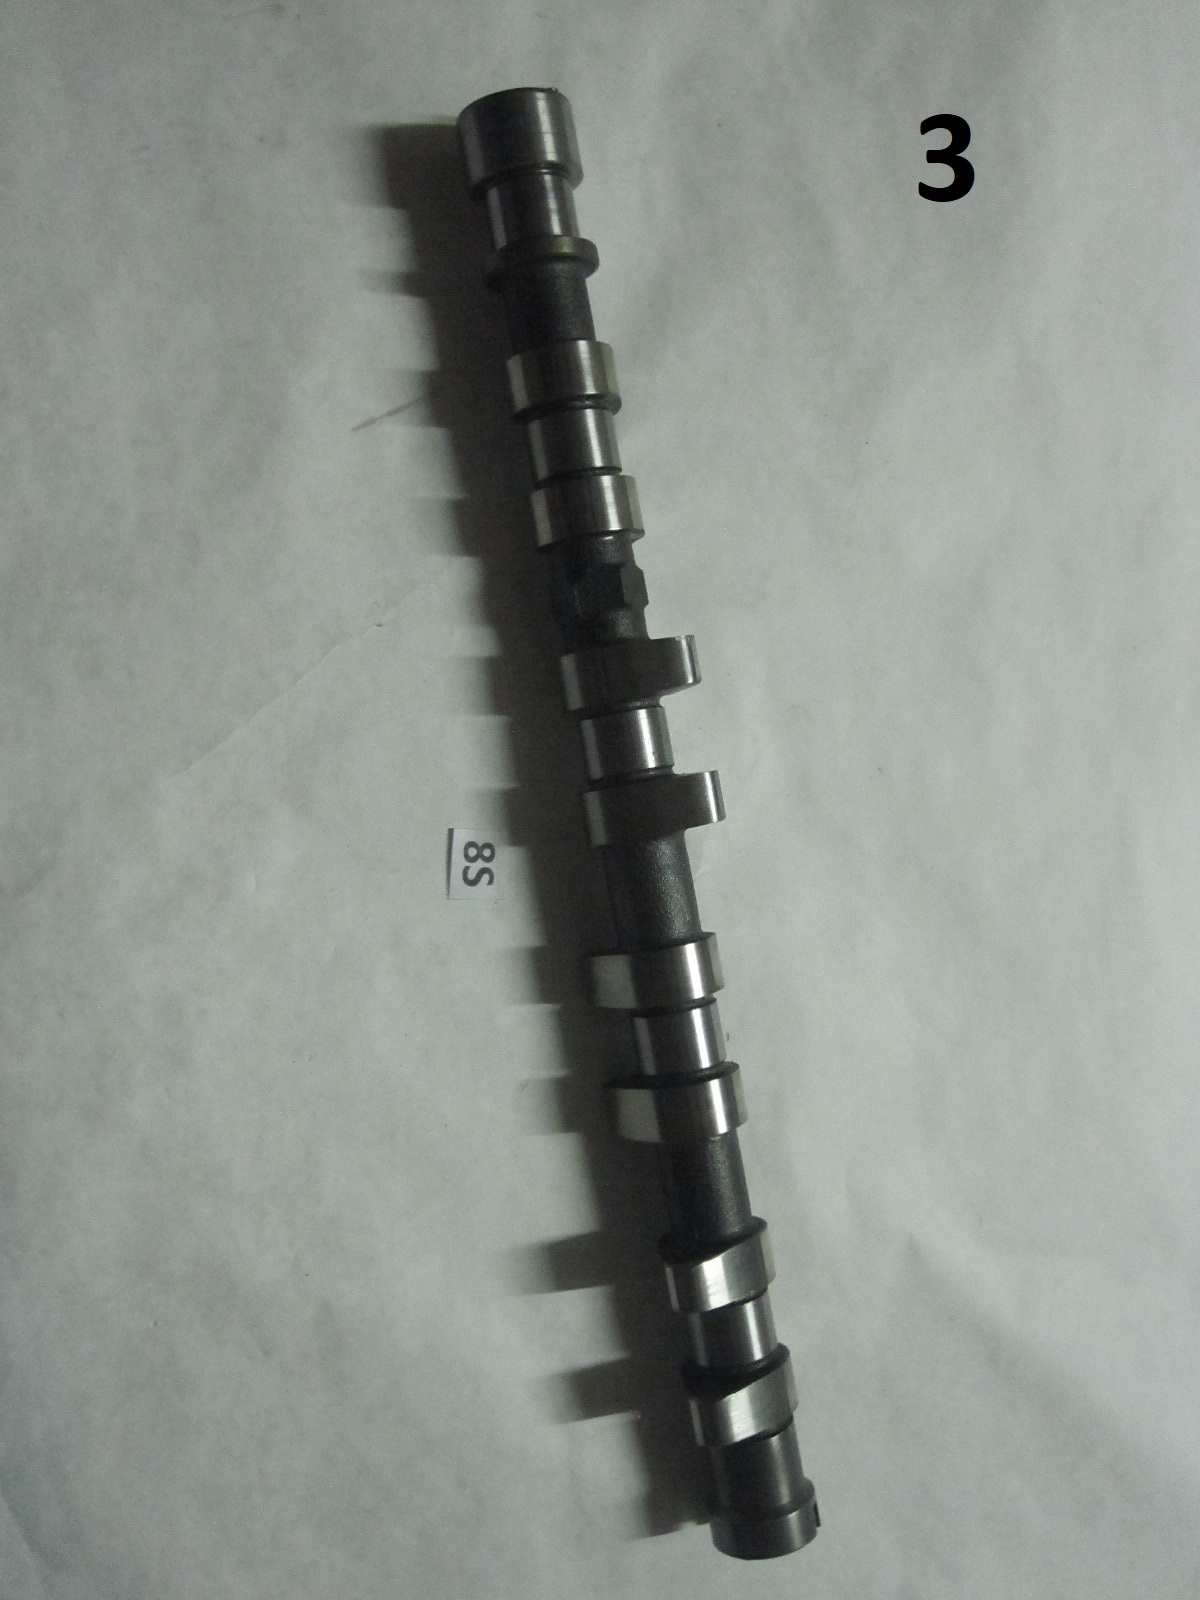 This is an aftermarket intake camshaft for a Mitsubishi